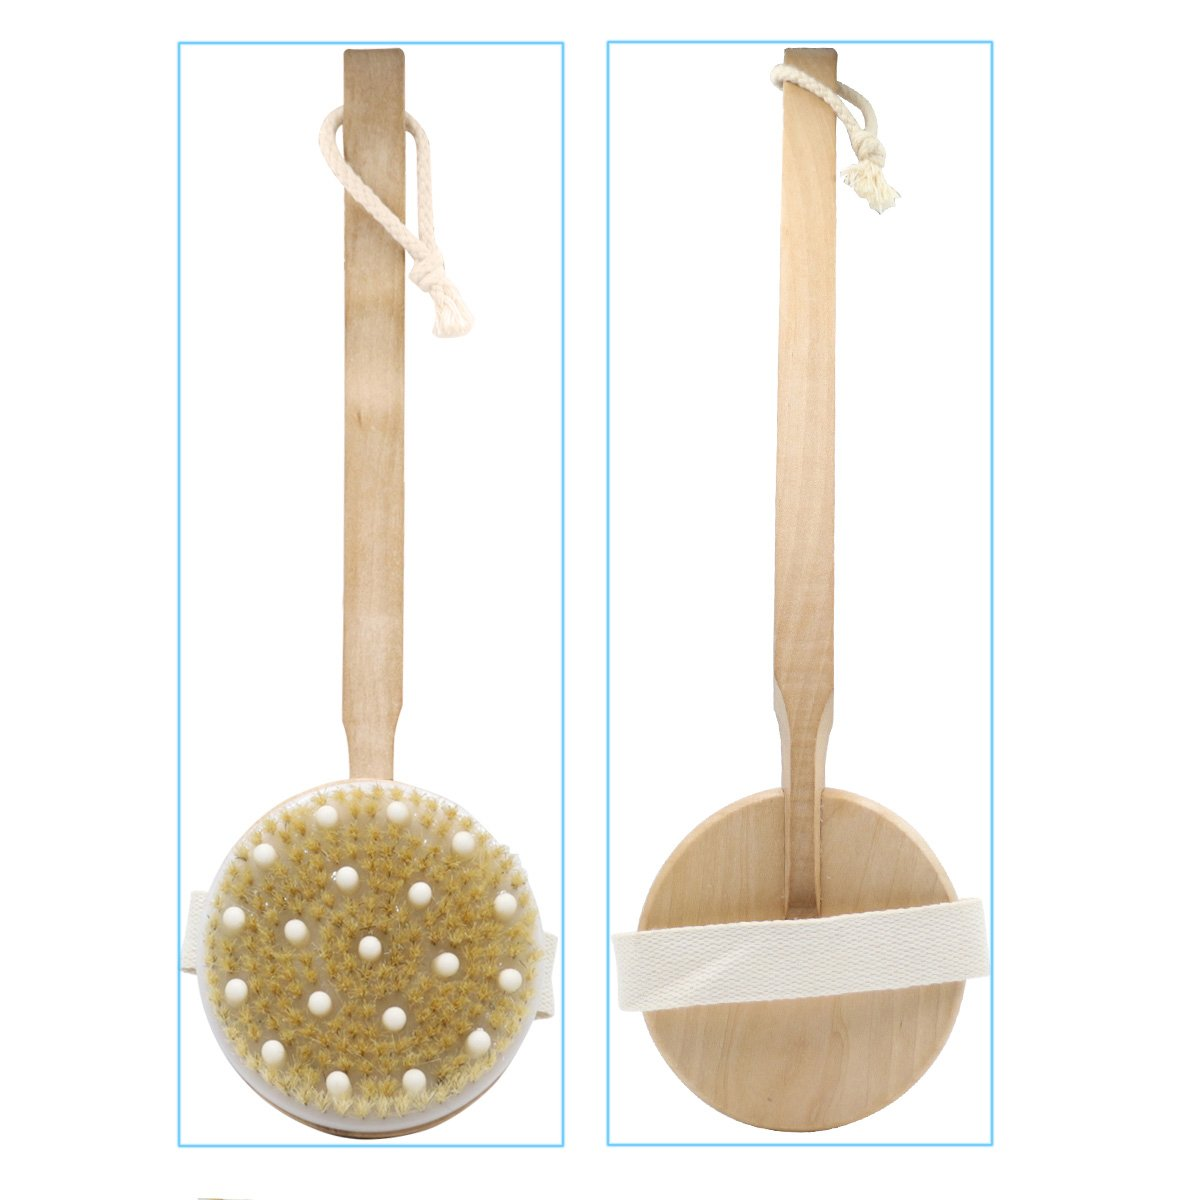 Body Brush Dry Brushing Massager Bath Shower Back Spa Scrubber with 100% Natural Boar Bristles and Long Wood Handle